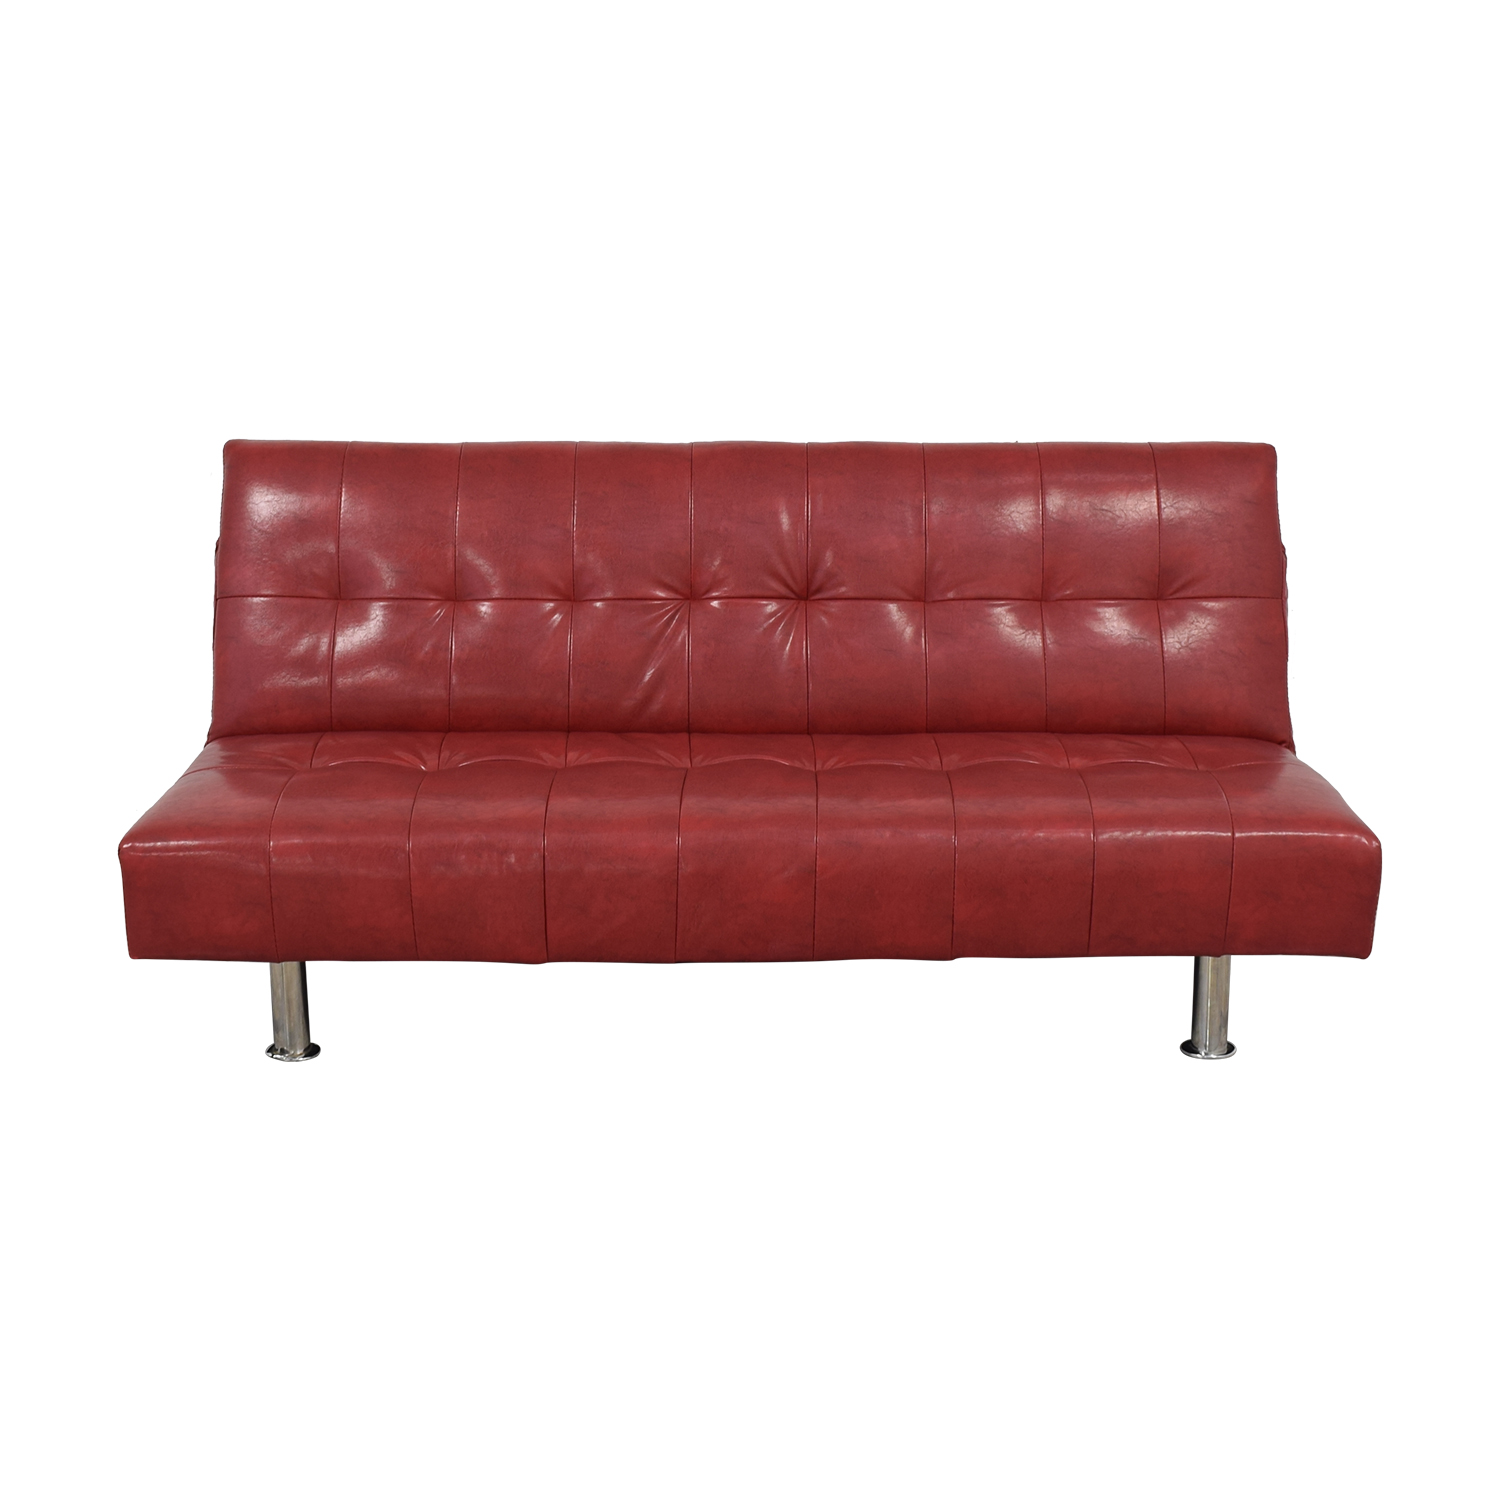 Macy's Red Faux Leather Sofa/Futon / Sofas